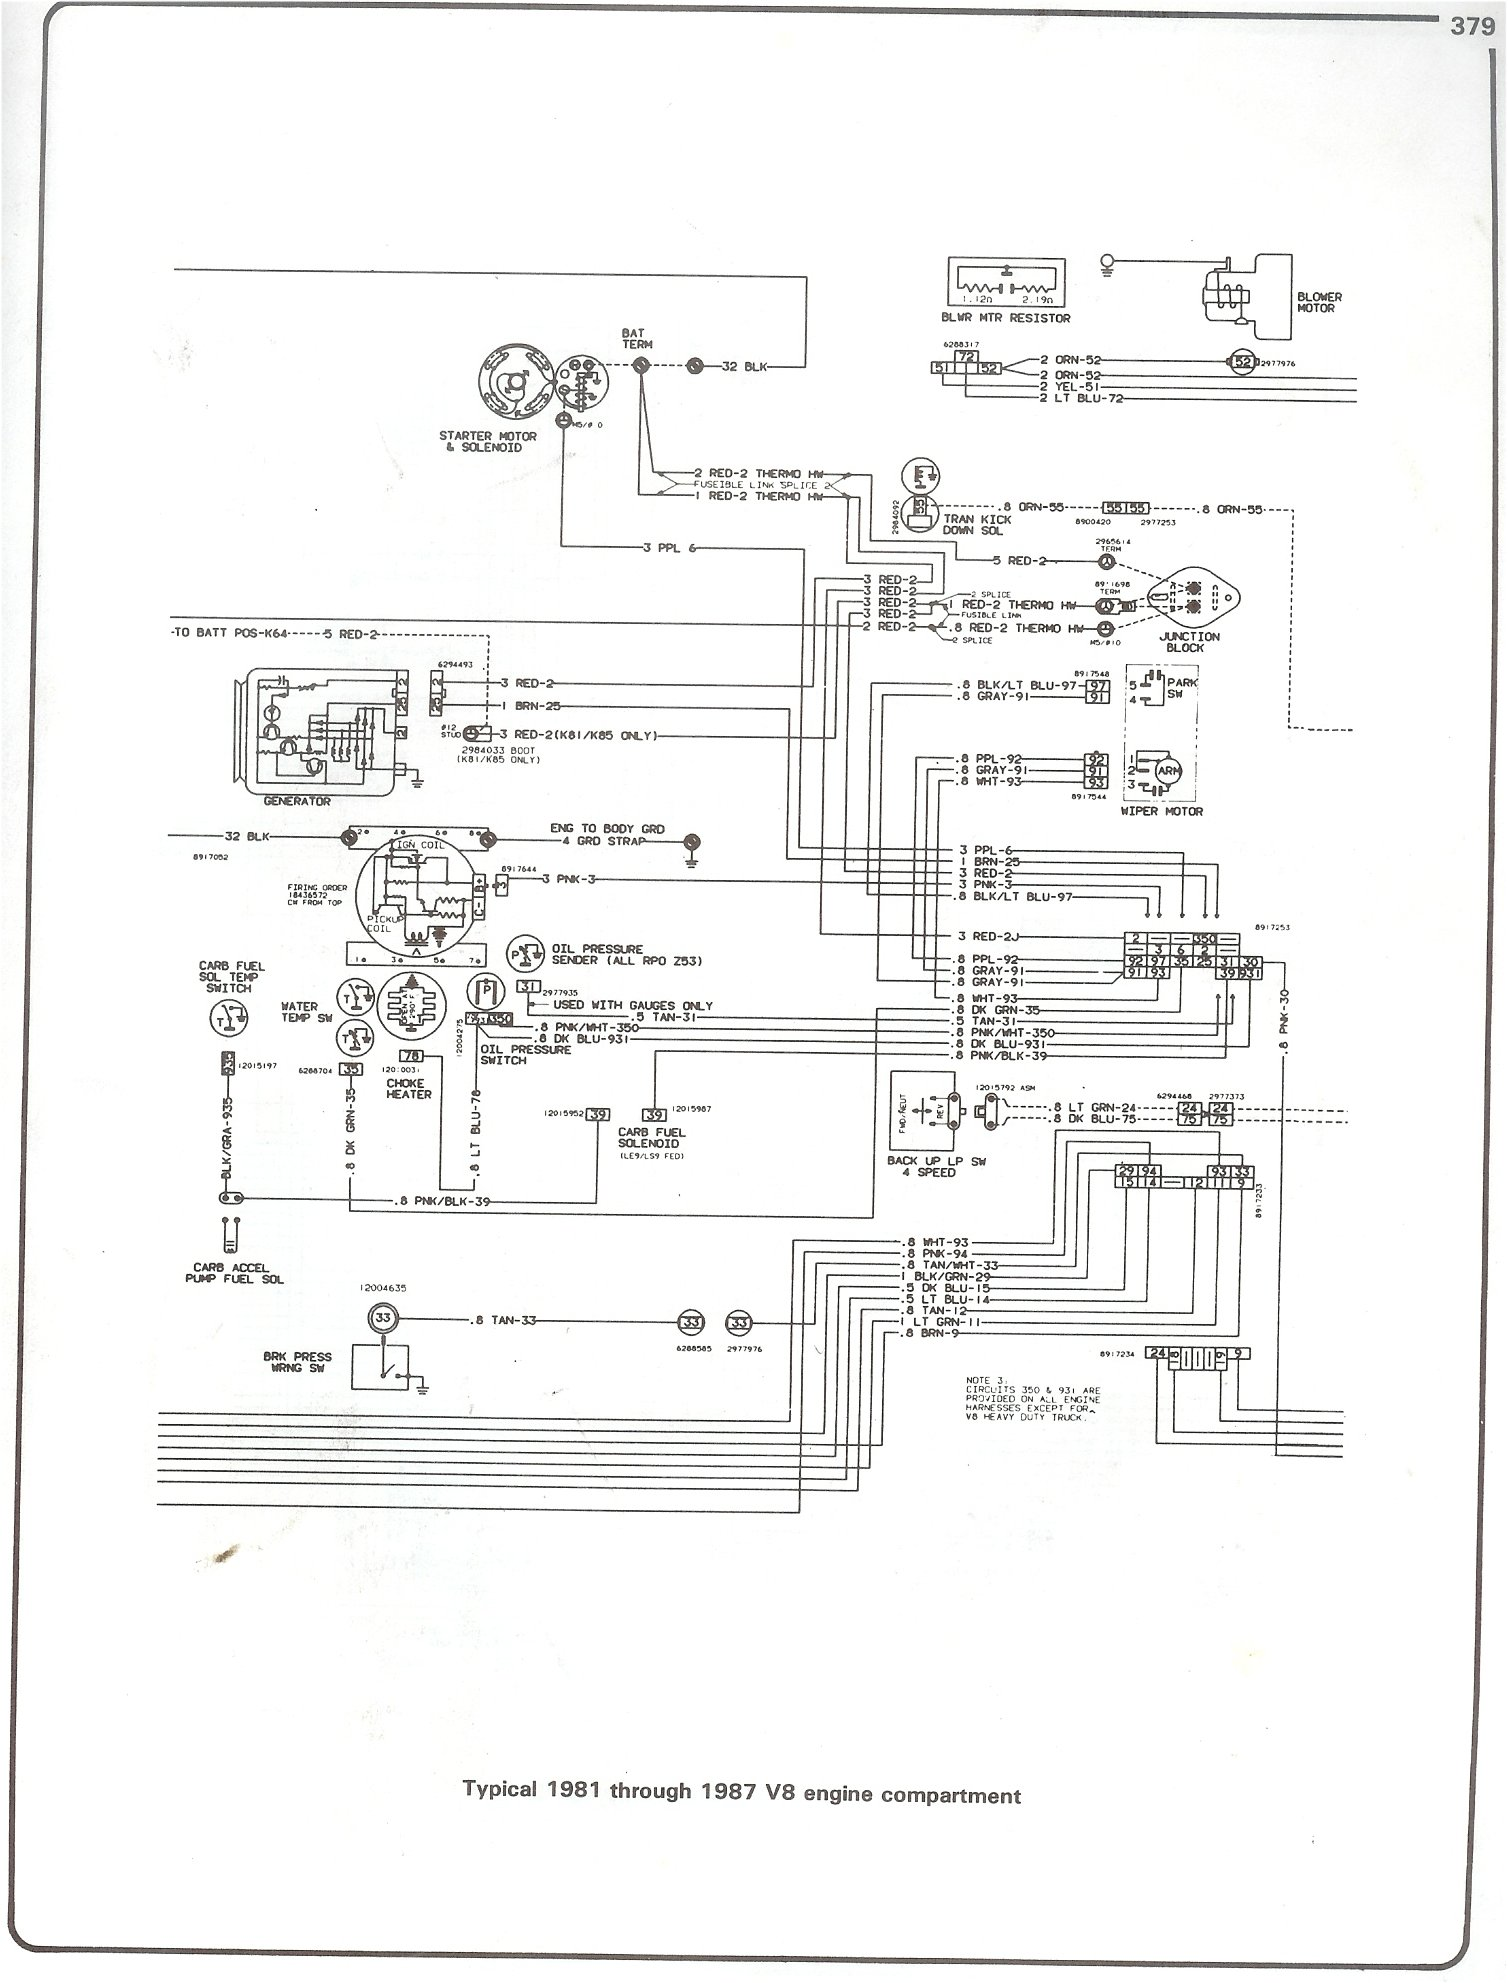 Gm Solenoid Wiring 1977 Schematic Diagrams F150 Diagram V8 Chevy Engine Ac Complete 73 87